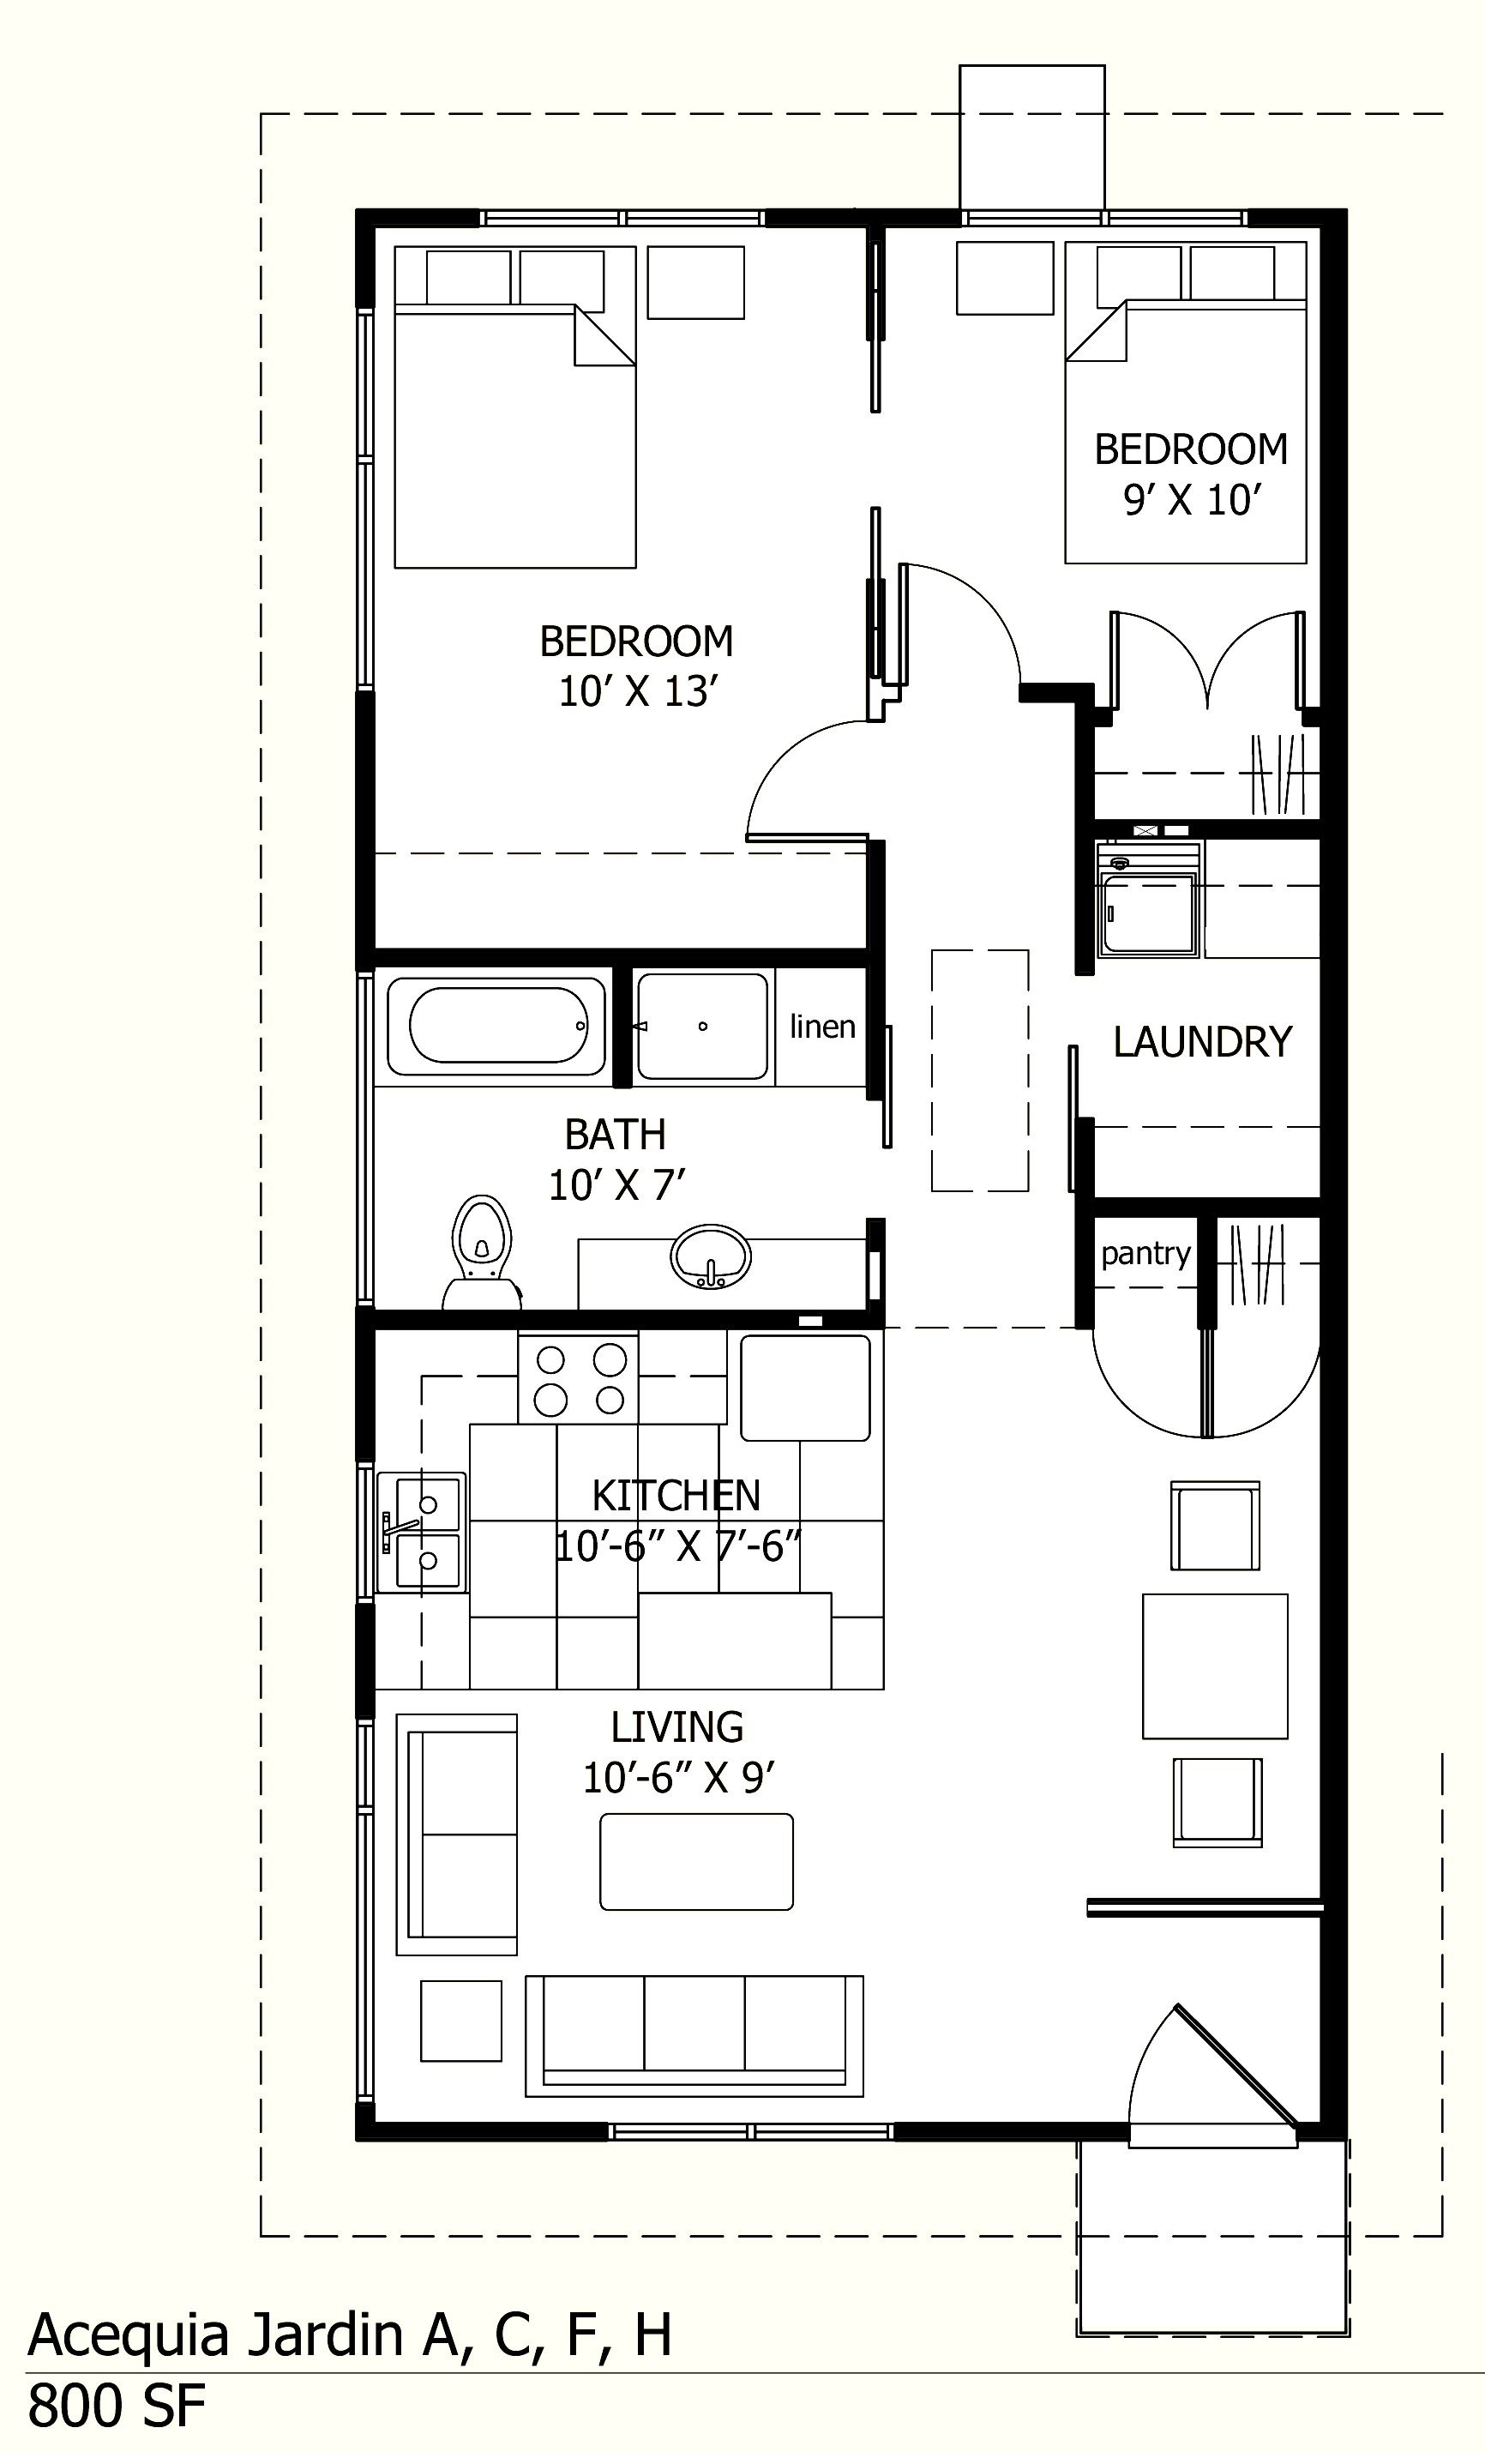 Simple 7 Bedroom House Plans Fresh 800 Sq Ft